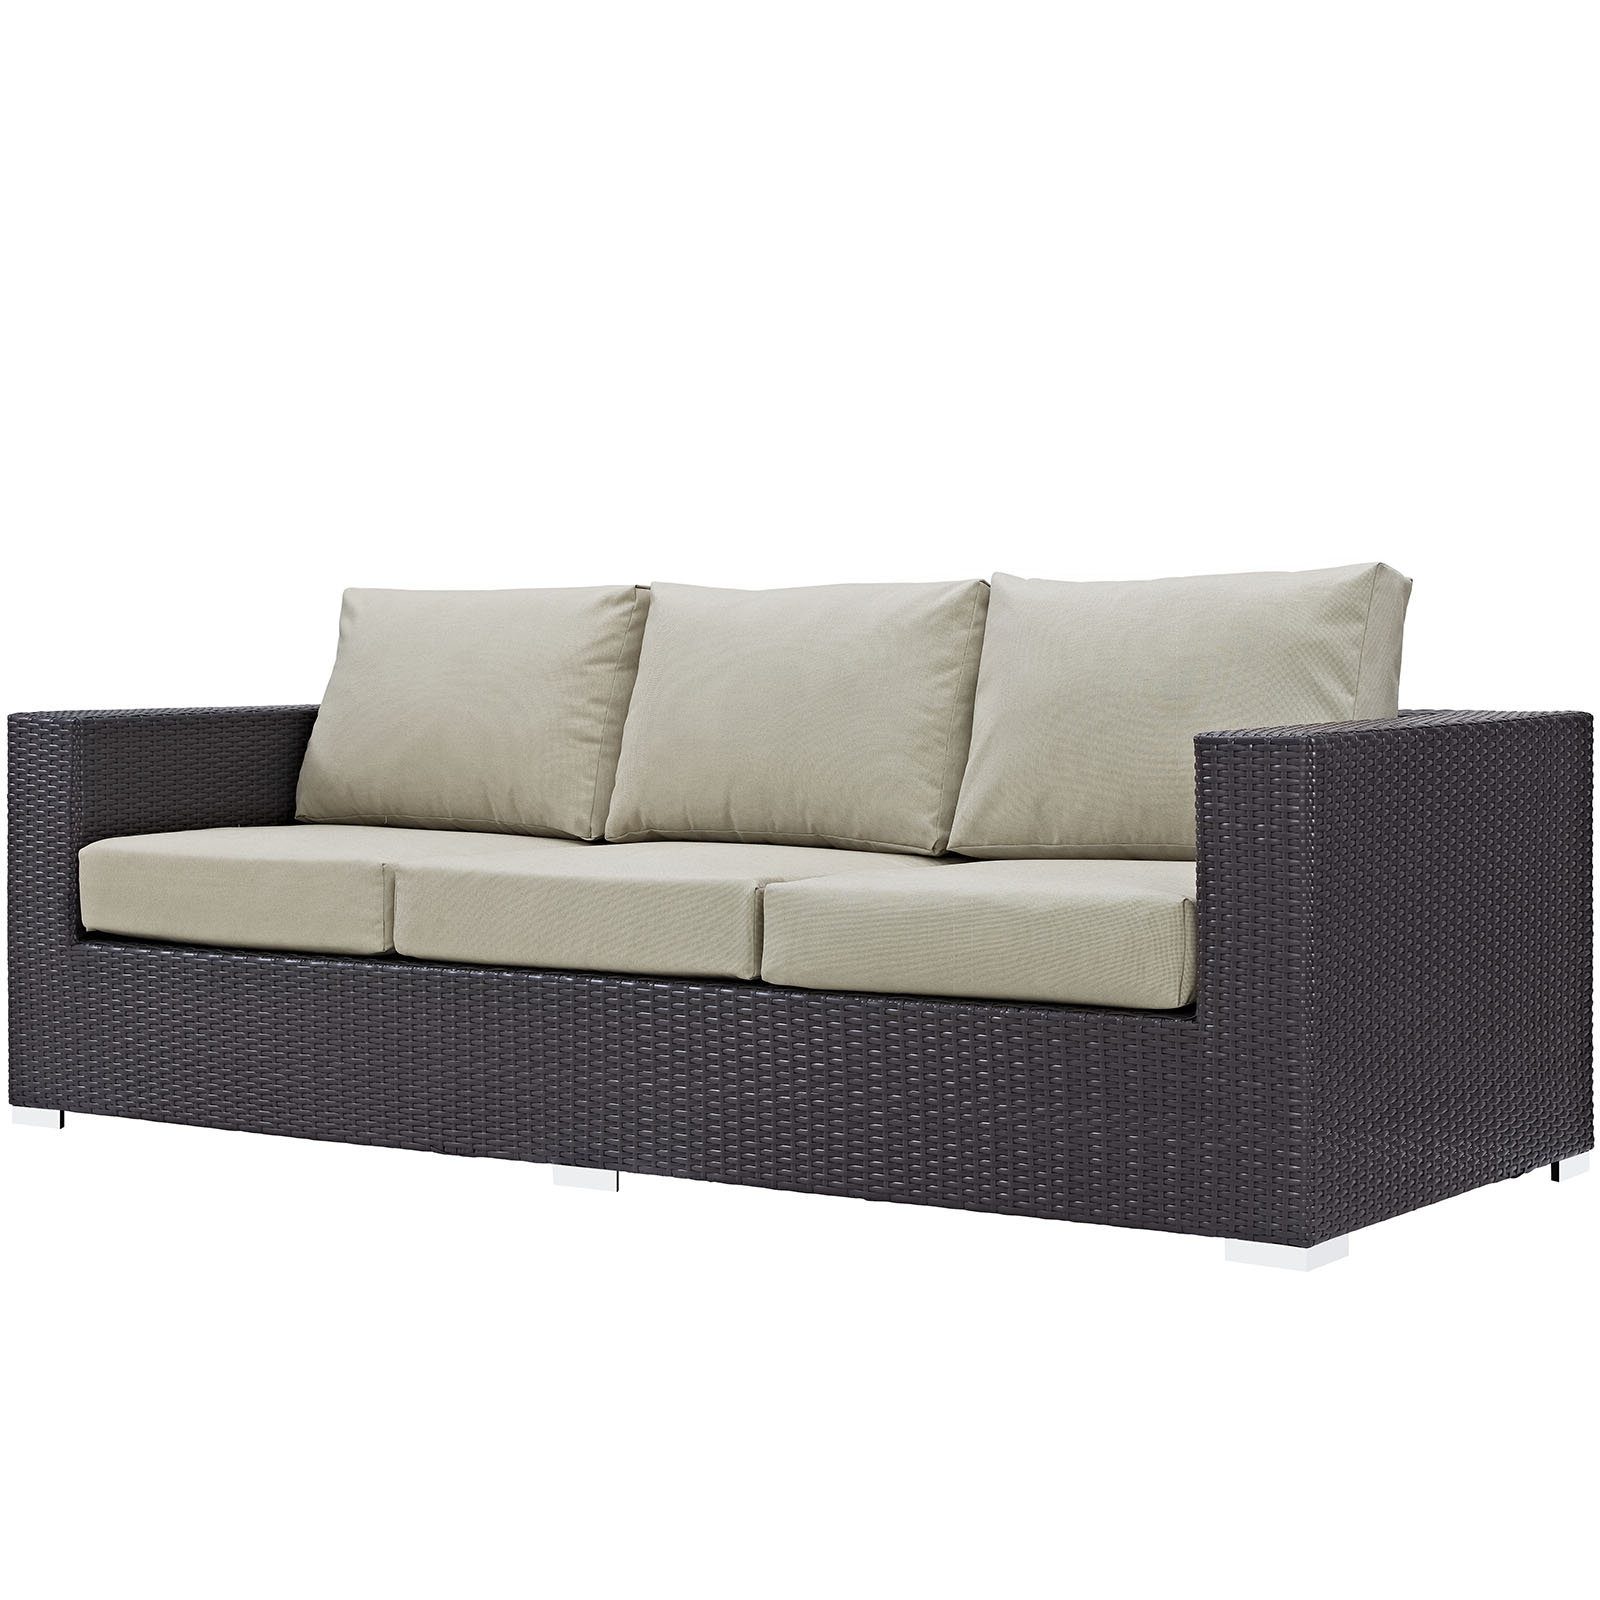 Allmodern Inside Loggins Patio Sofas With Cushions (View 19 of 20)